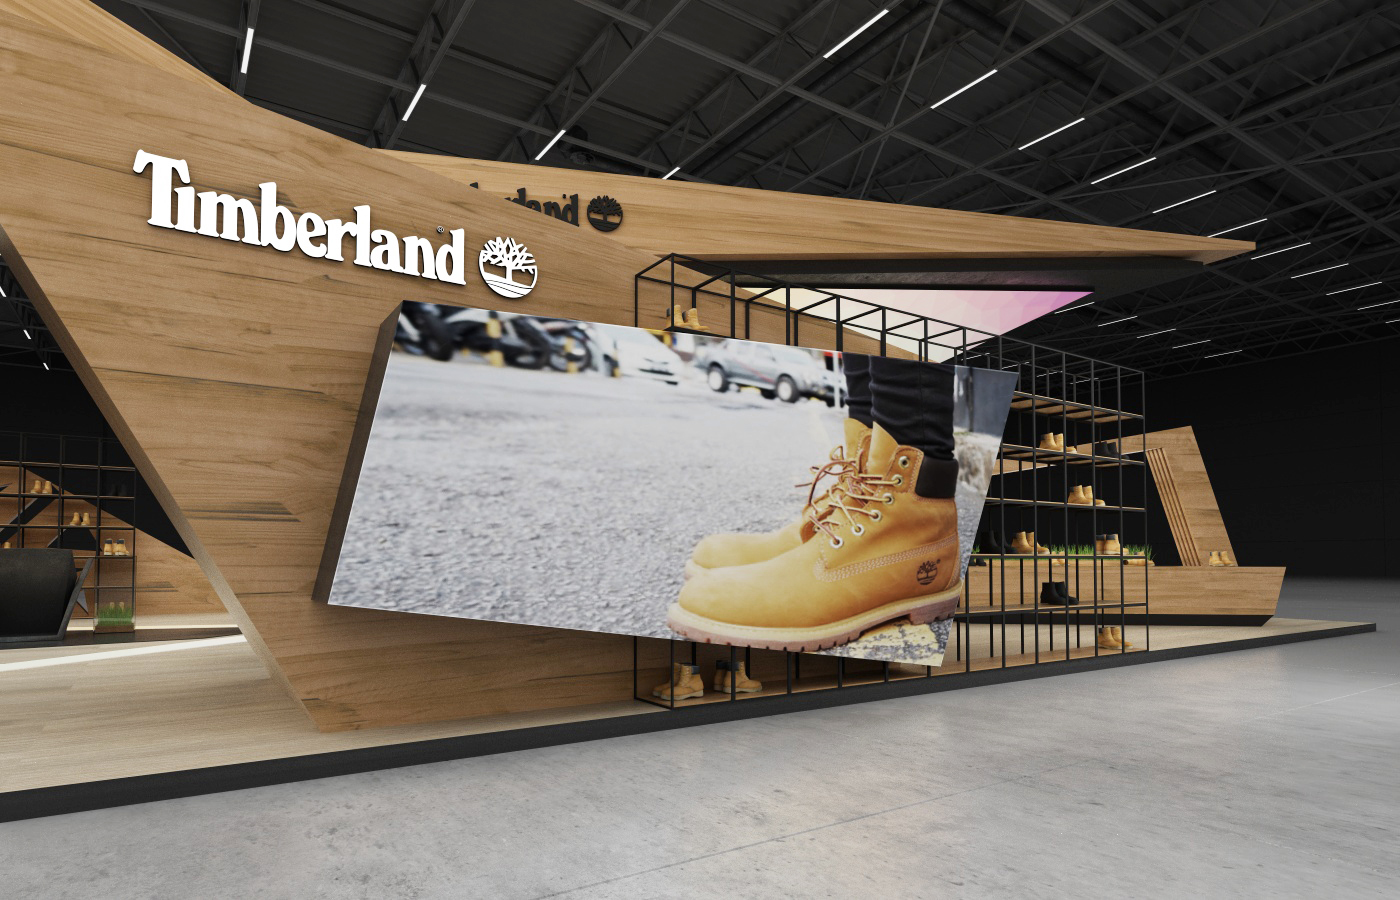 Exhibition Stand Industrial : Timberland exhibition stand on behance